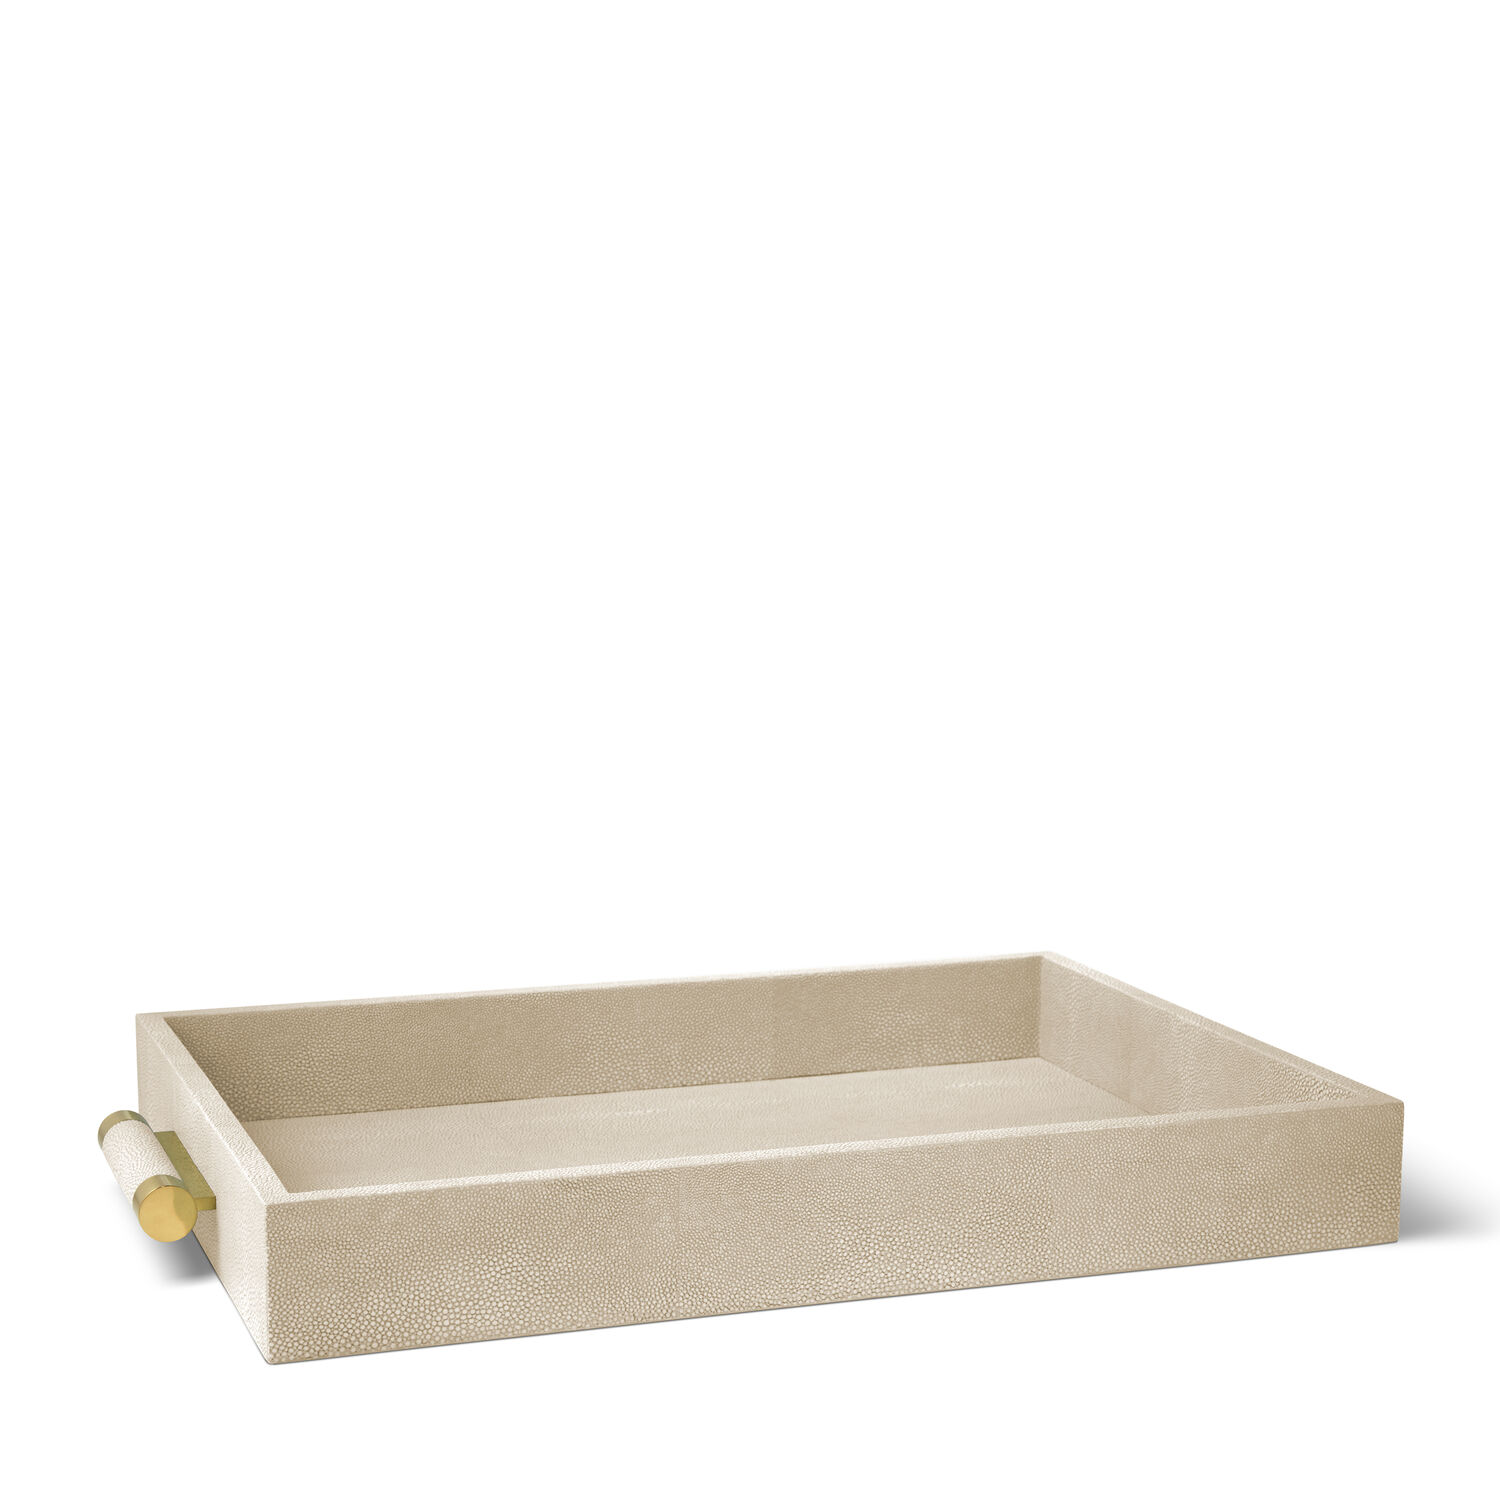 CLASSIC SHAGREEN SERVING TRAY (WHEAT)